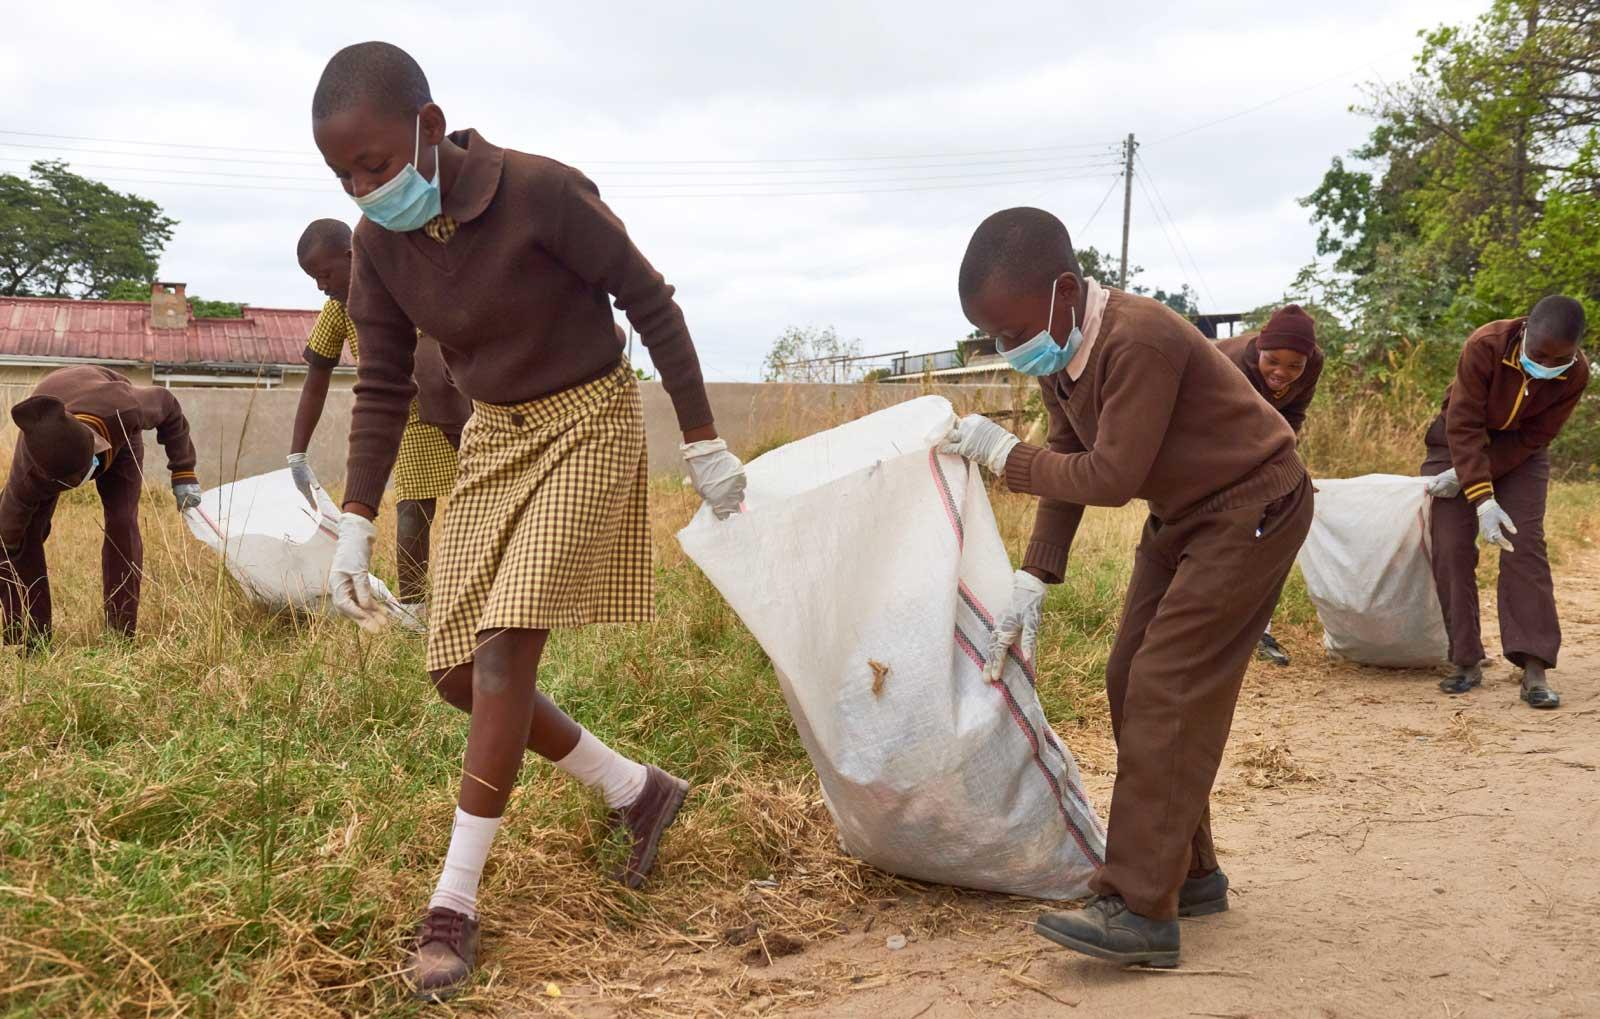 Kids collecting trash